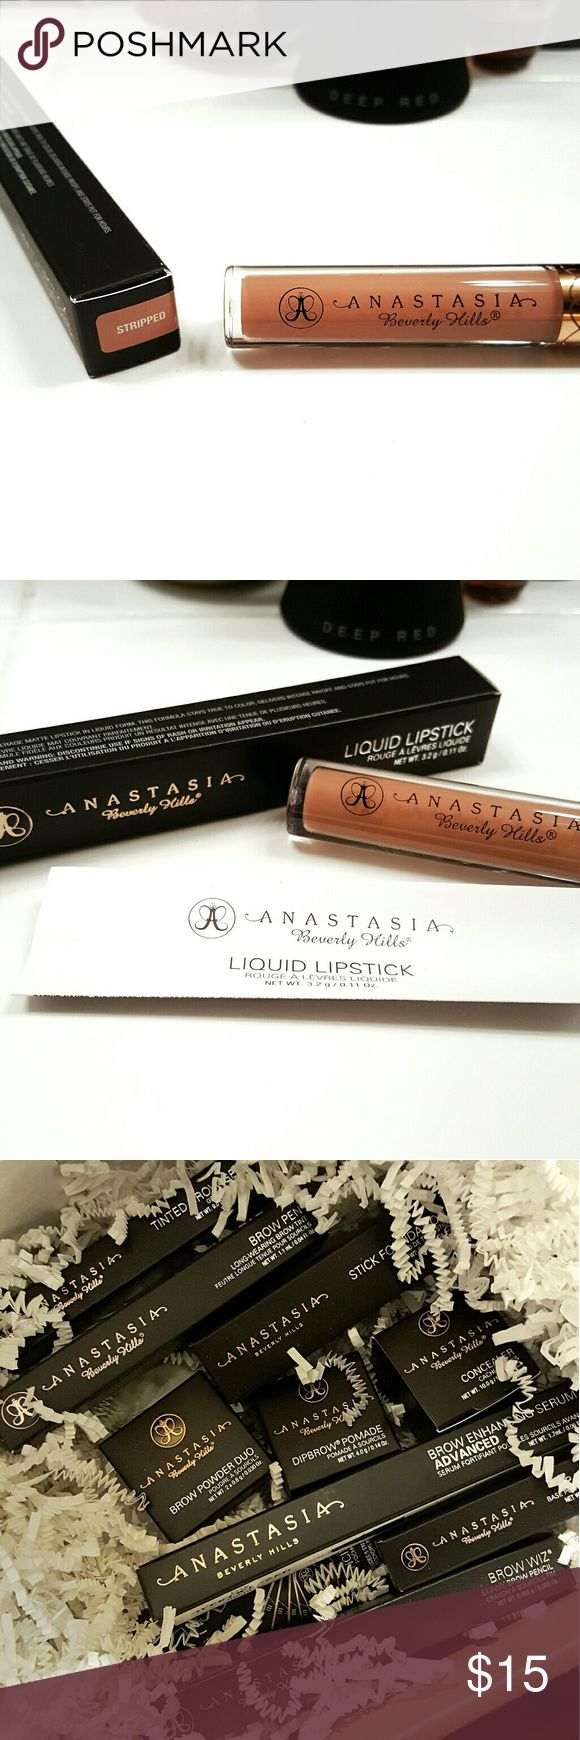 Anastasia BH stripped liquid matte lipstick Anastasia Beverly Hills liquid matte lipstick in stripped. - 100% authentic - full size - brand new in box, never used. Anastasia Beverly Hills Makeup Lipstick